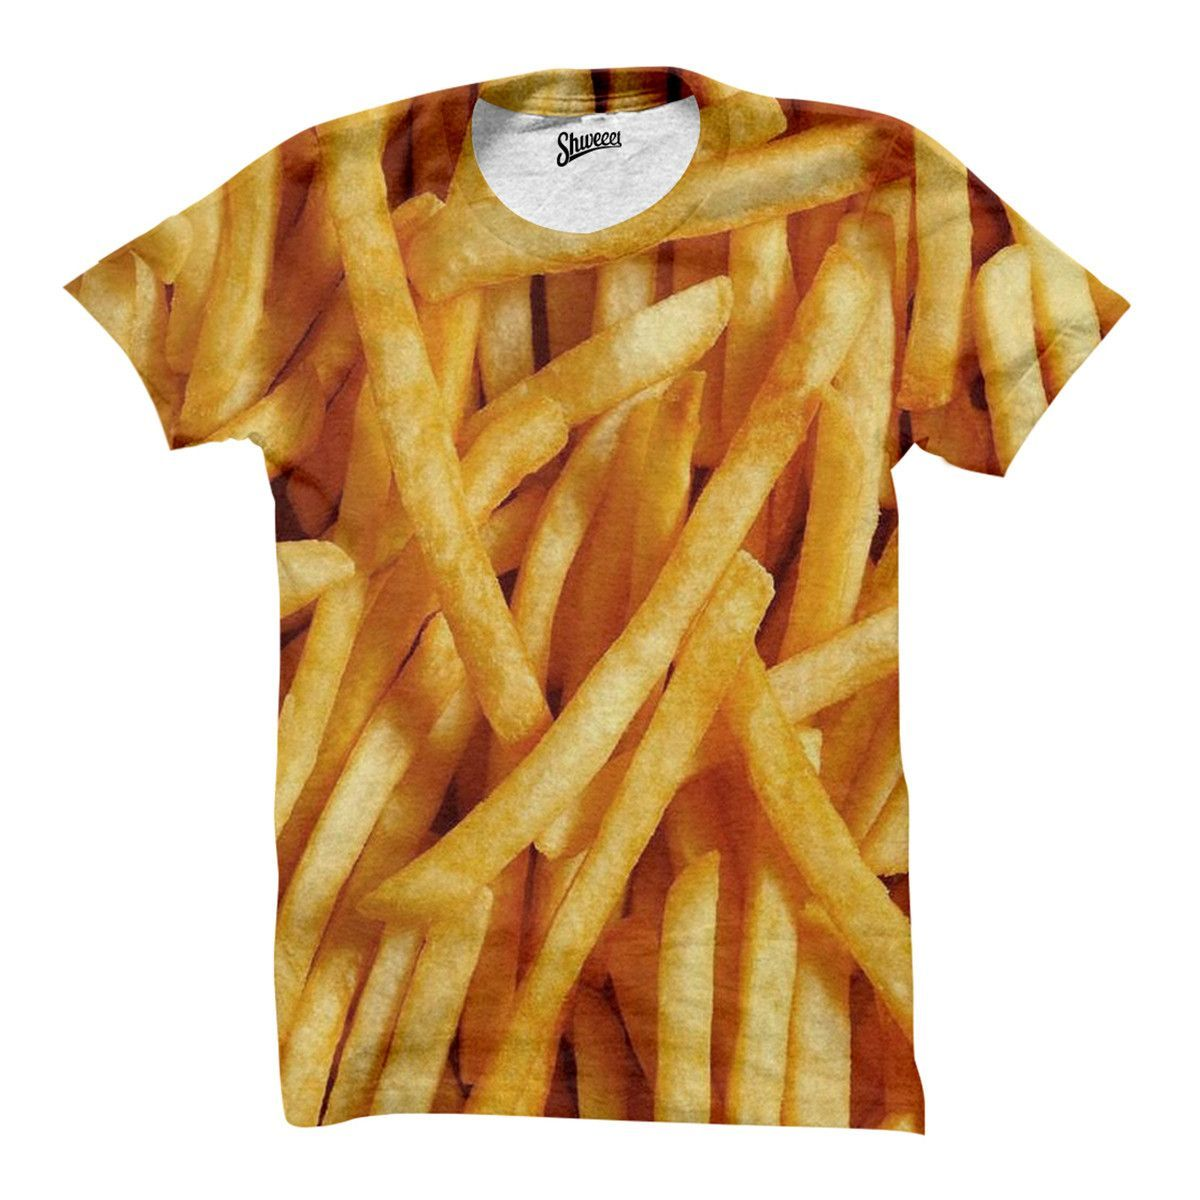 f10bf1120 French Fries T shirt | Comfy | Fries, French fries, Food